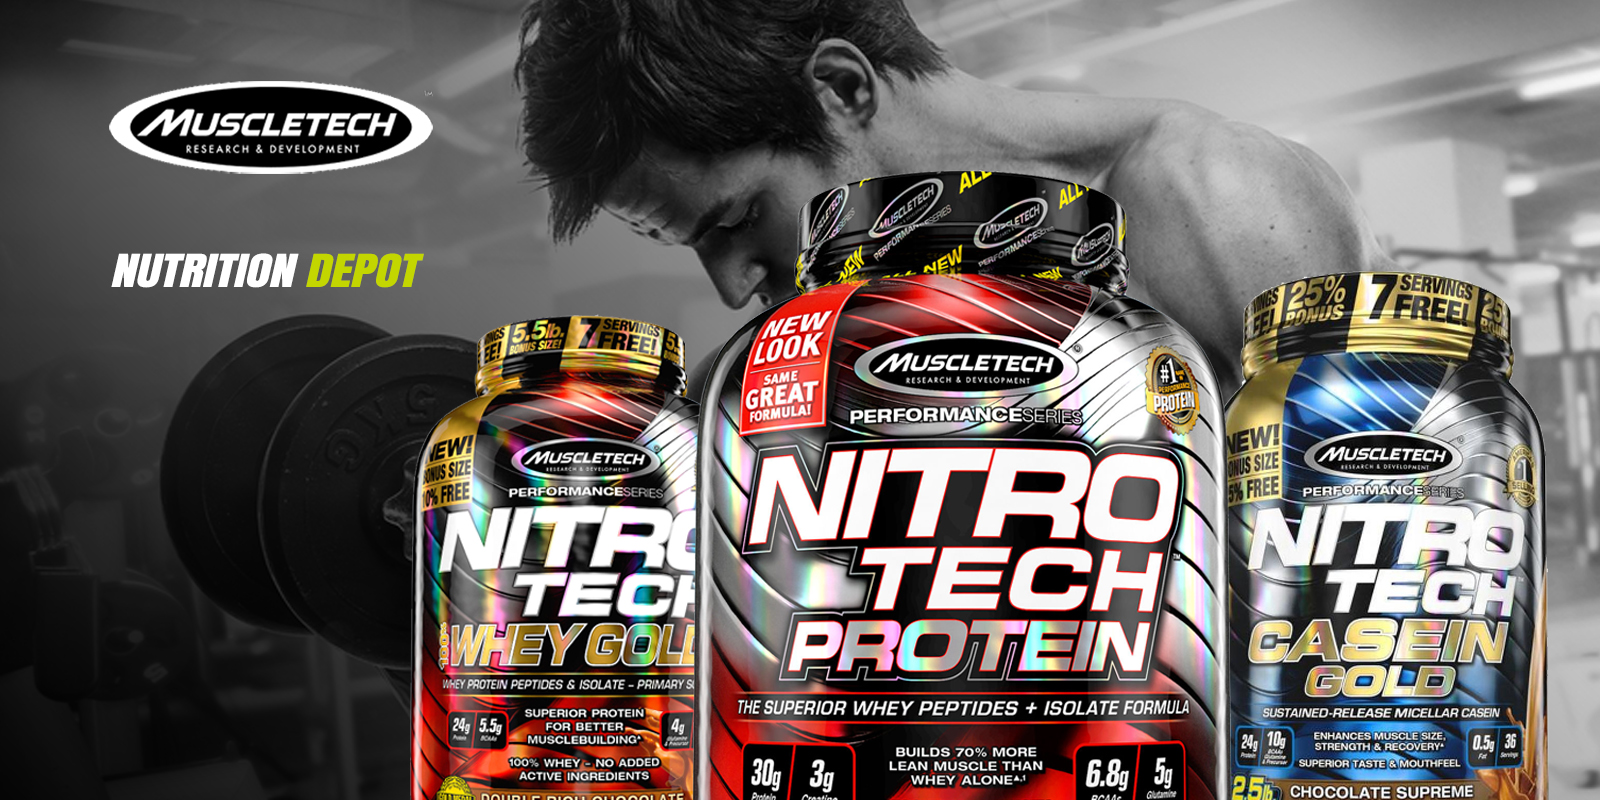 NITROTECH PRODUCTS